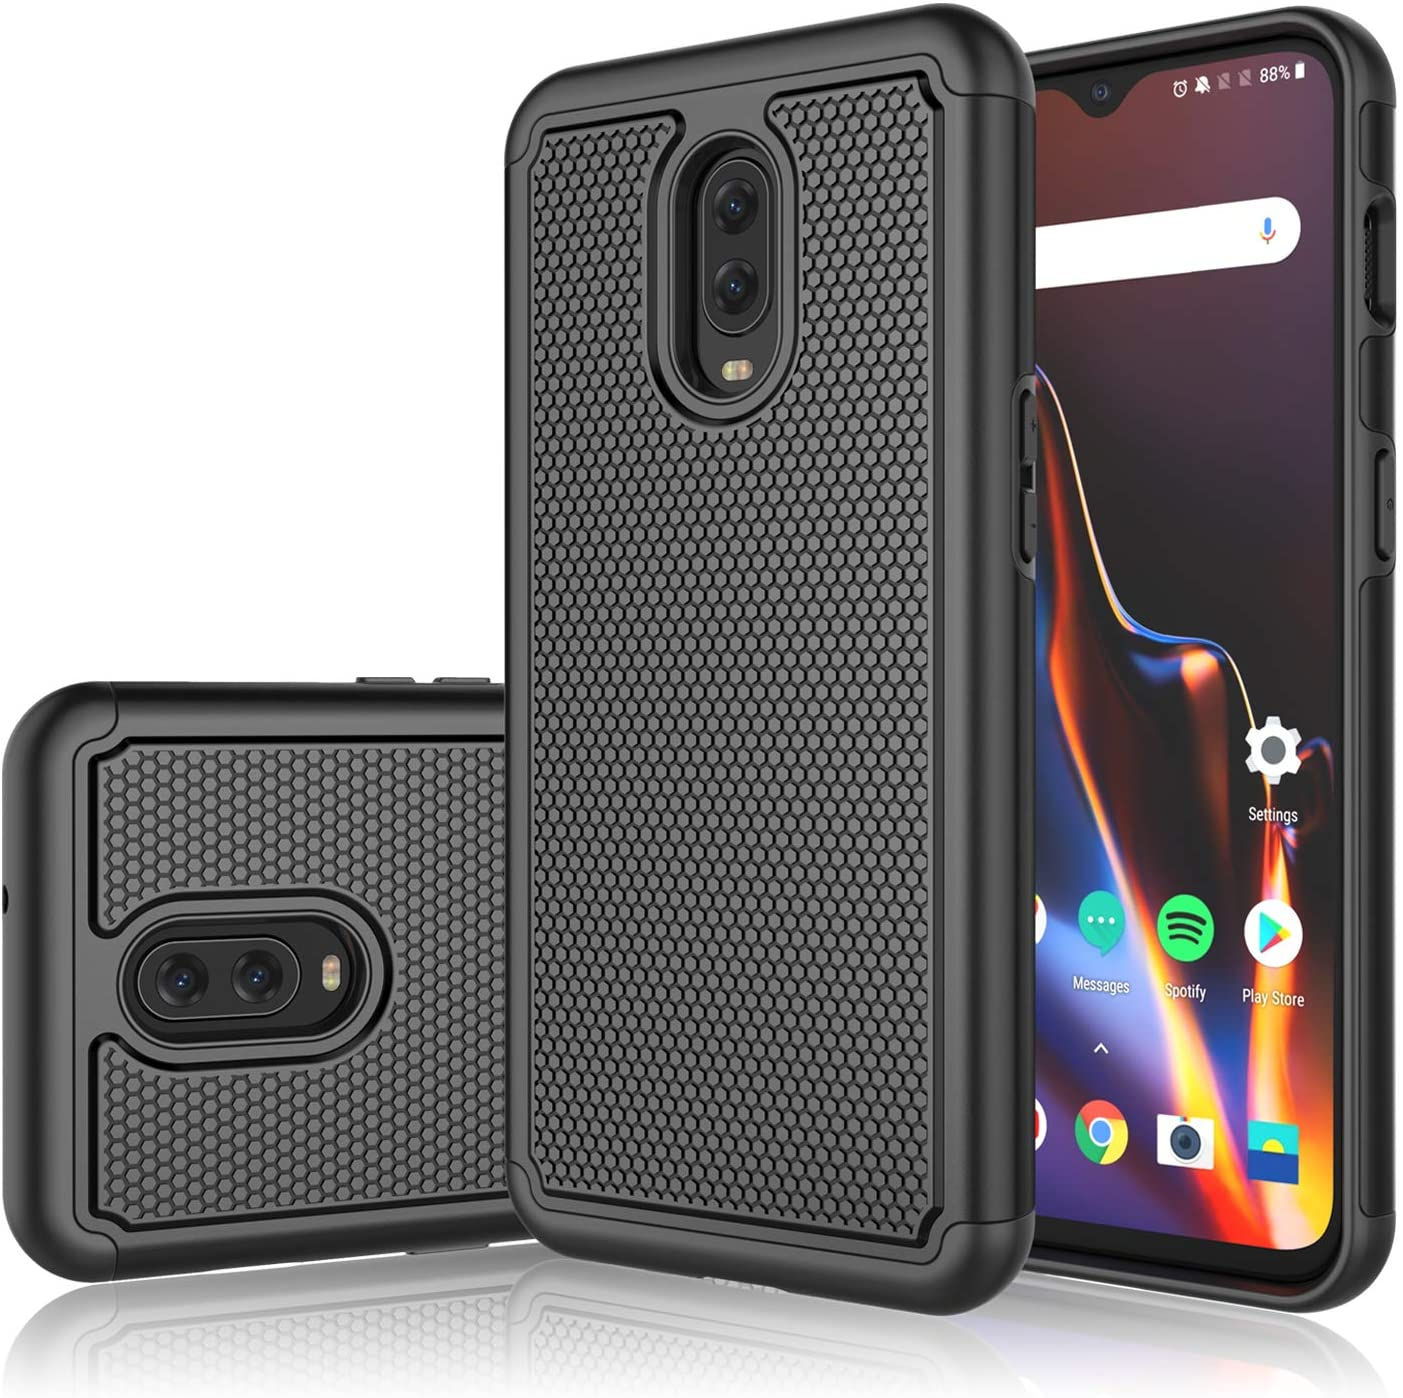 Tinysaturn OnePlus 6T Case, for OnePlus 6T Case, [Ysaturn] Durable Hybrid Impact Armor Dual Anti-Slip Shockproof Against Scratches Hard Shell Rubber Cover - Black